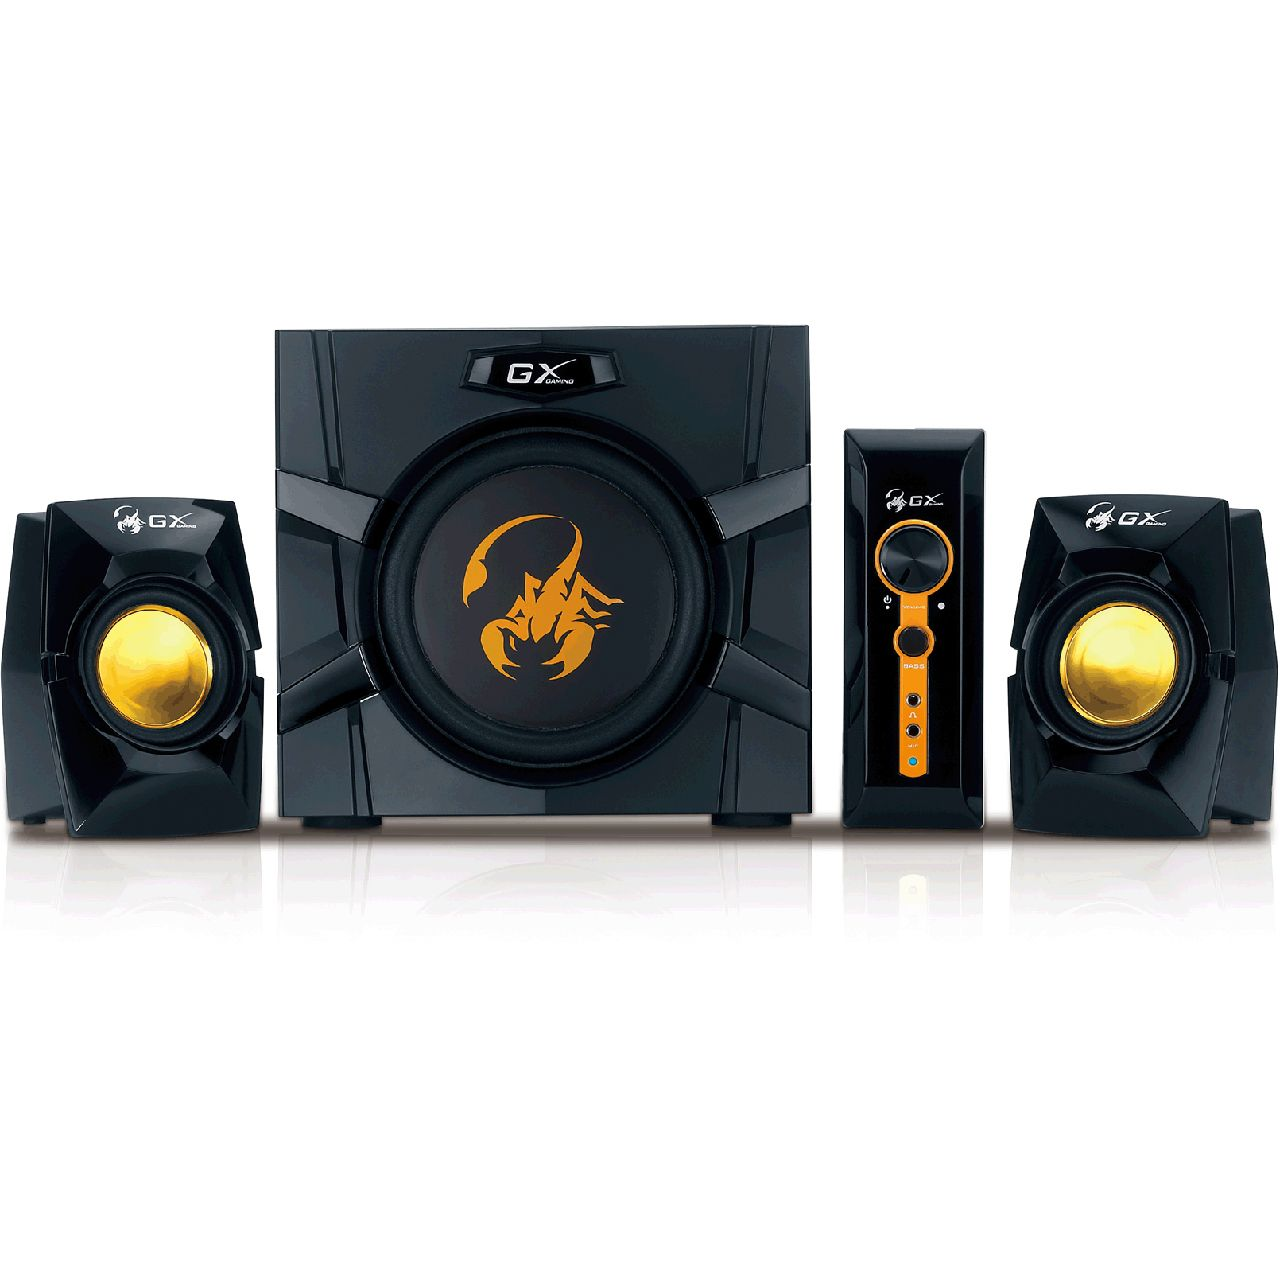 genius sw g2 1 3000 2 1 system 70w rms schwarz gold 2 1 systeme hardware. Black Bedroom Furniture Sets. Home Design Ideas